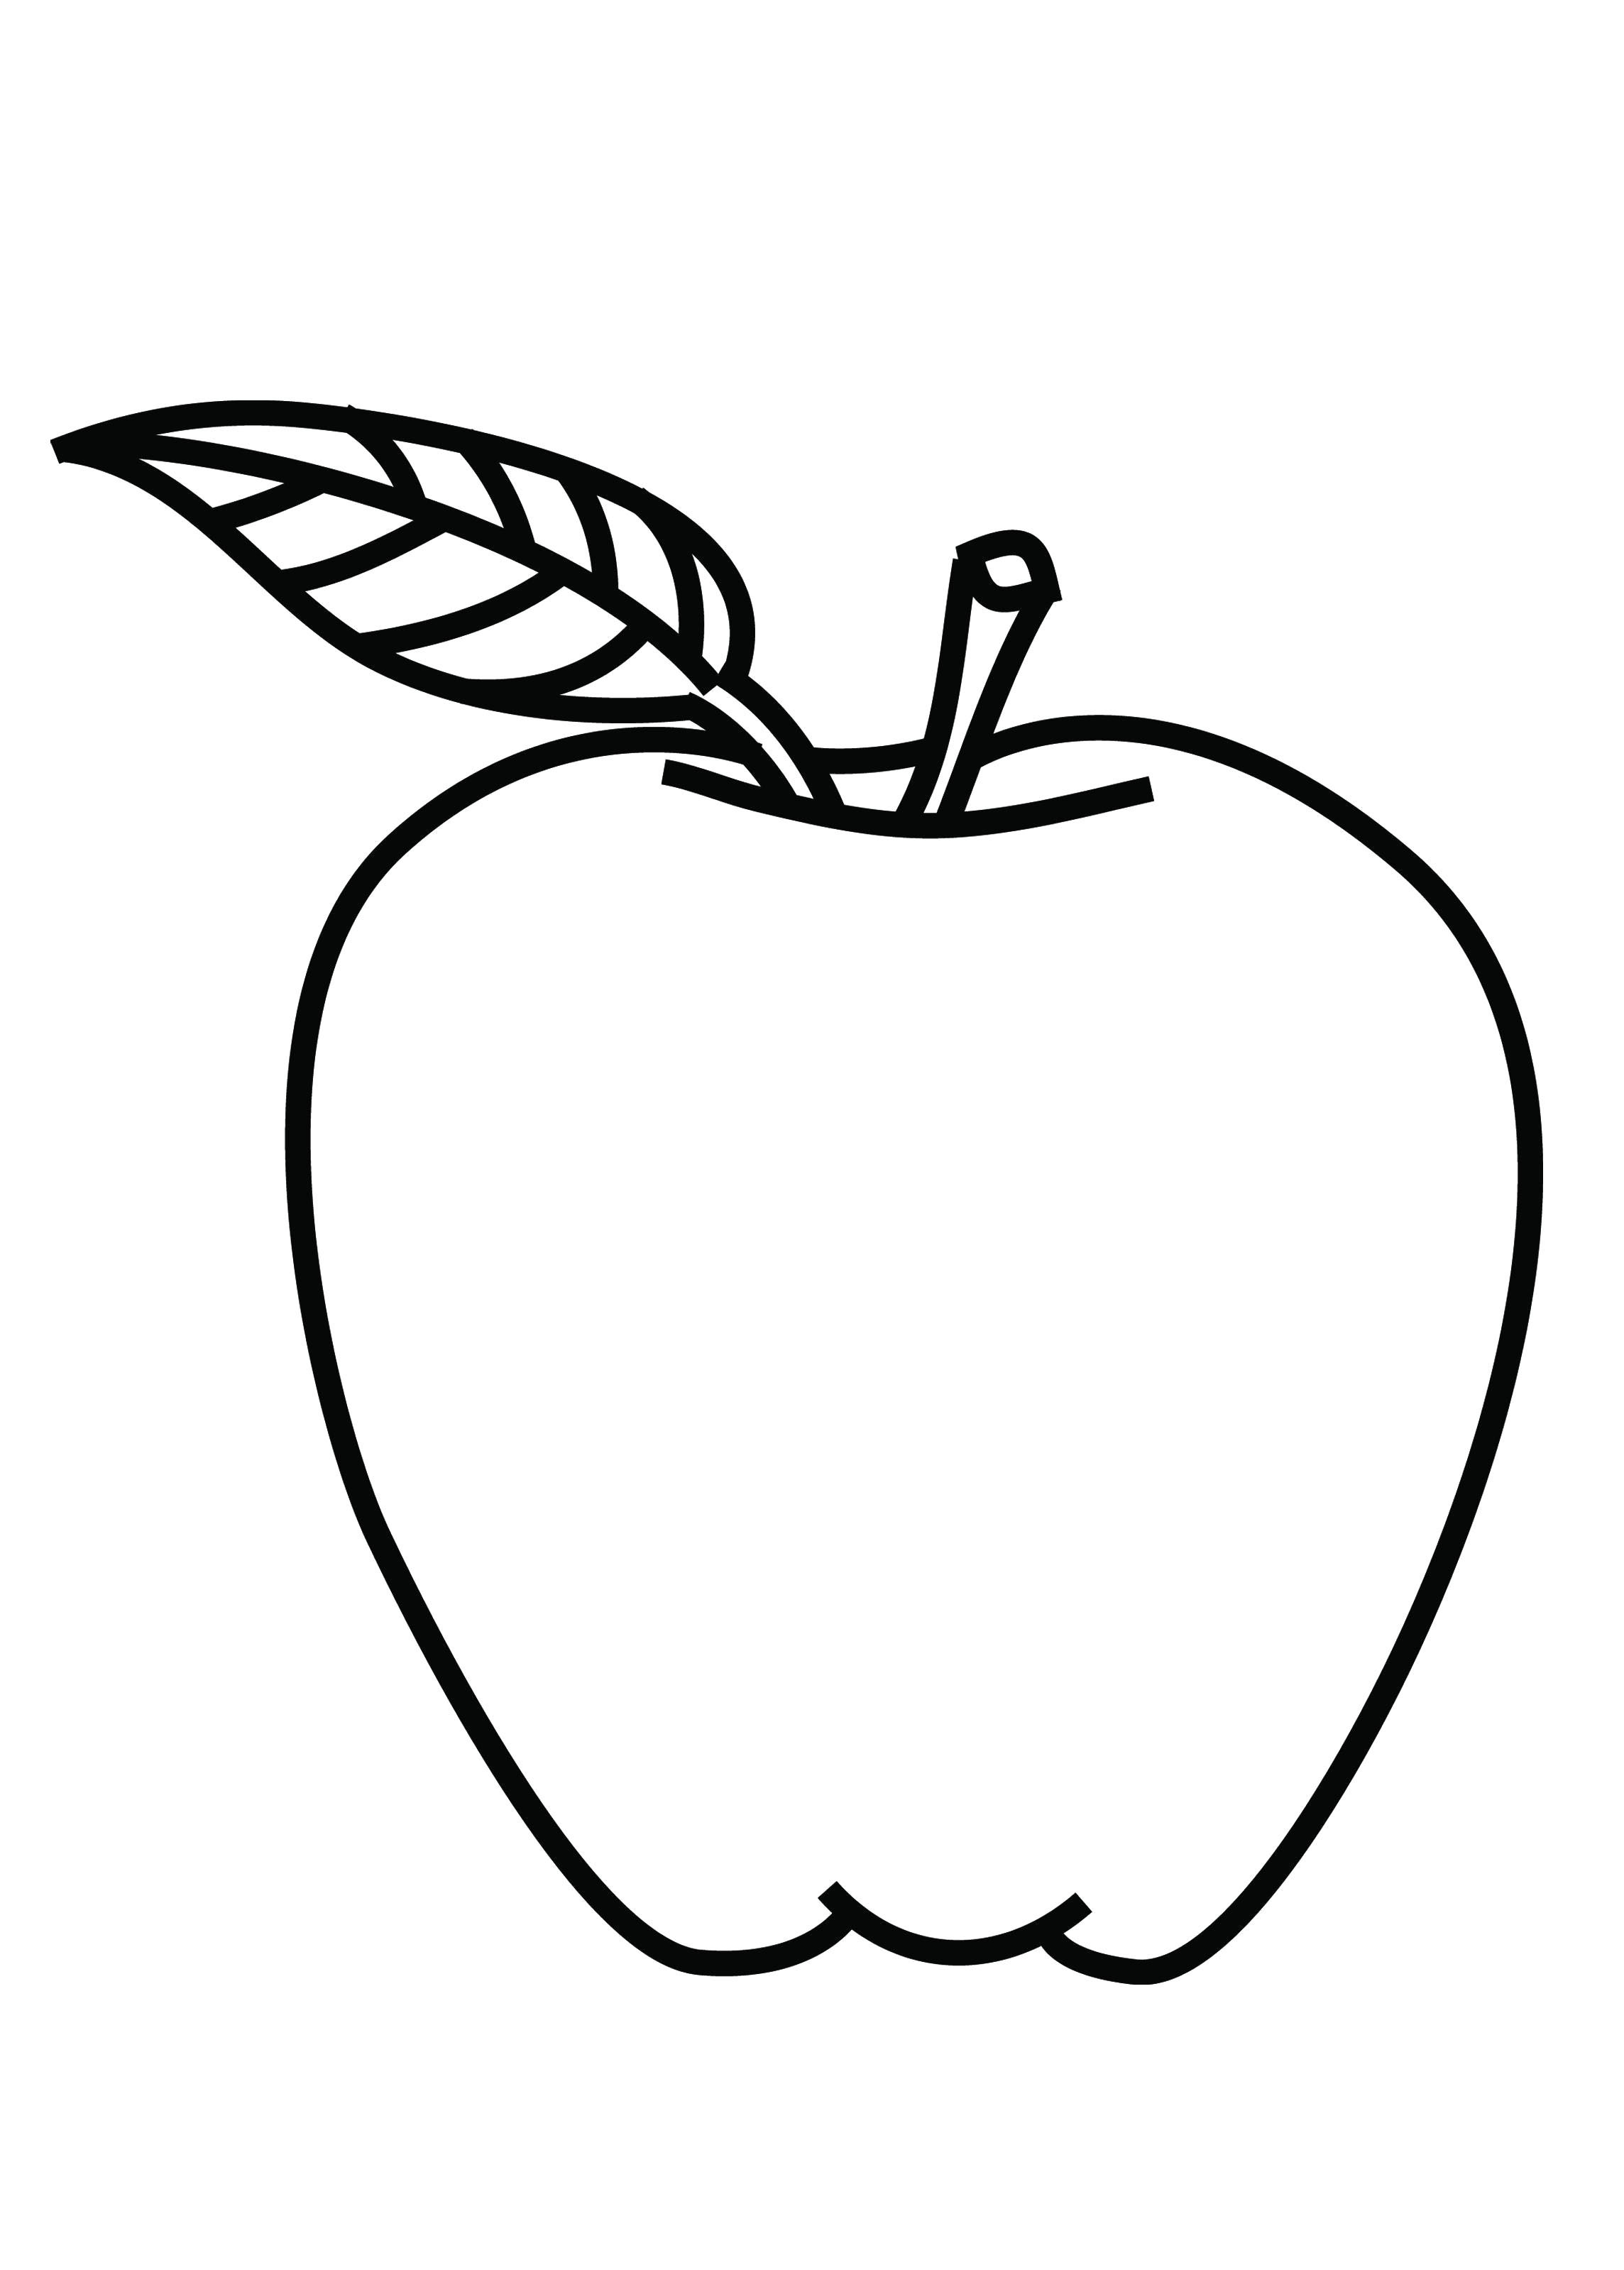 coloring apple worksheets for preschool pin by brittiny rothmeier on preschool apple template for worksheets preschool coloring apple